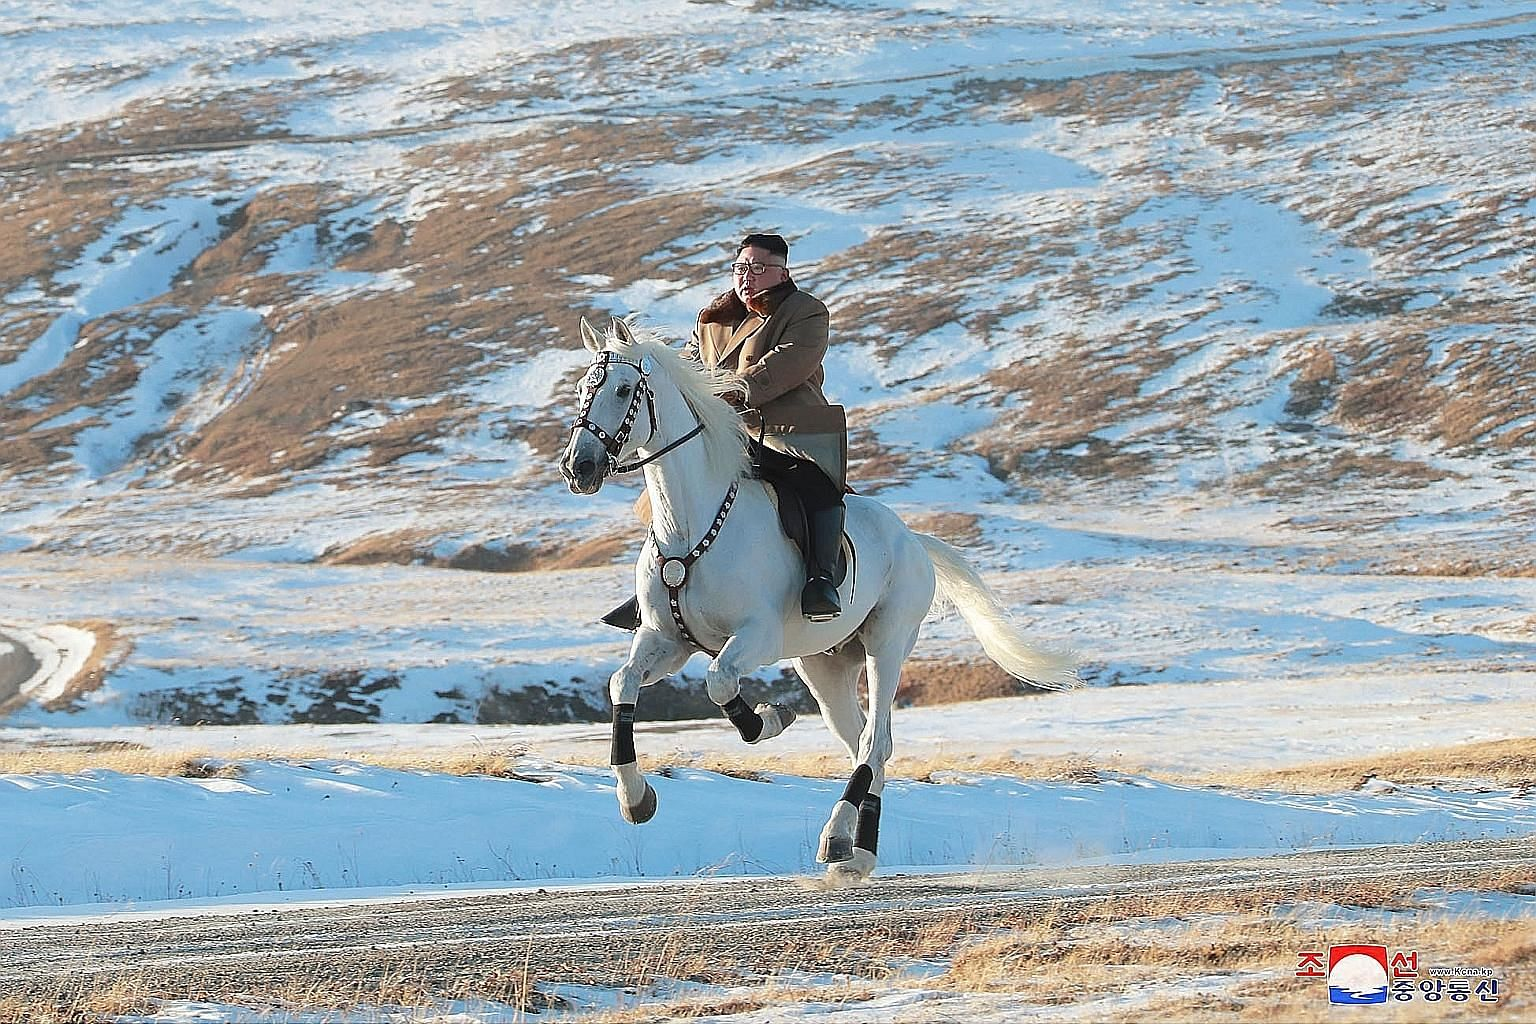 This undated photo provided by state news agency KCNA yesterday shows North Korean leader Kim Jong Un riding a white horse on the snow-covered Mount Paektu, the spiritual homeland of the Kim dynasty. Mr Kim has often made trips to the sacred mountain